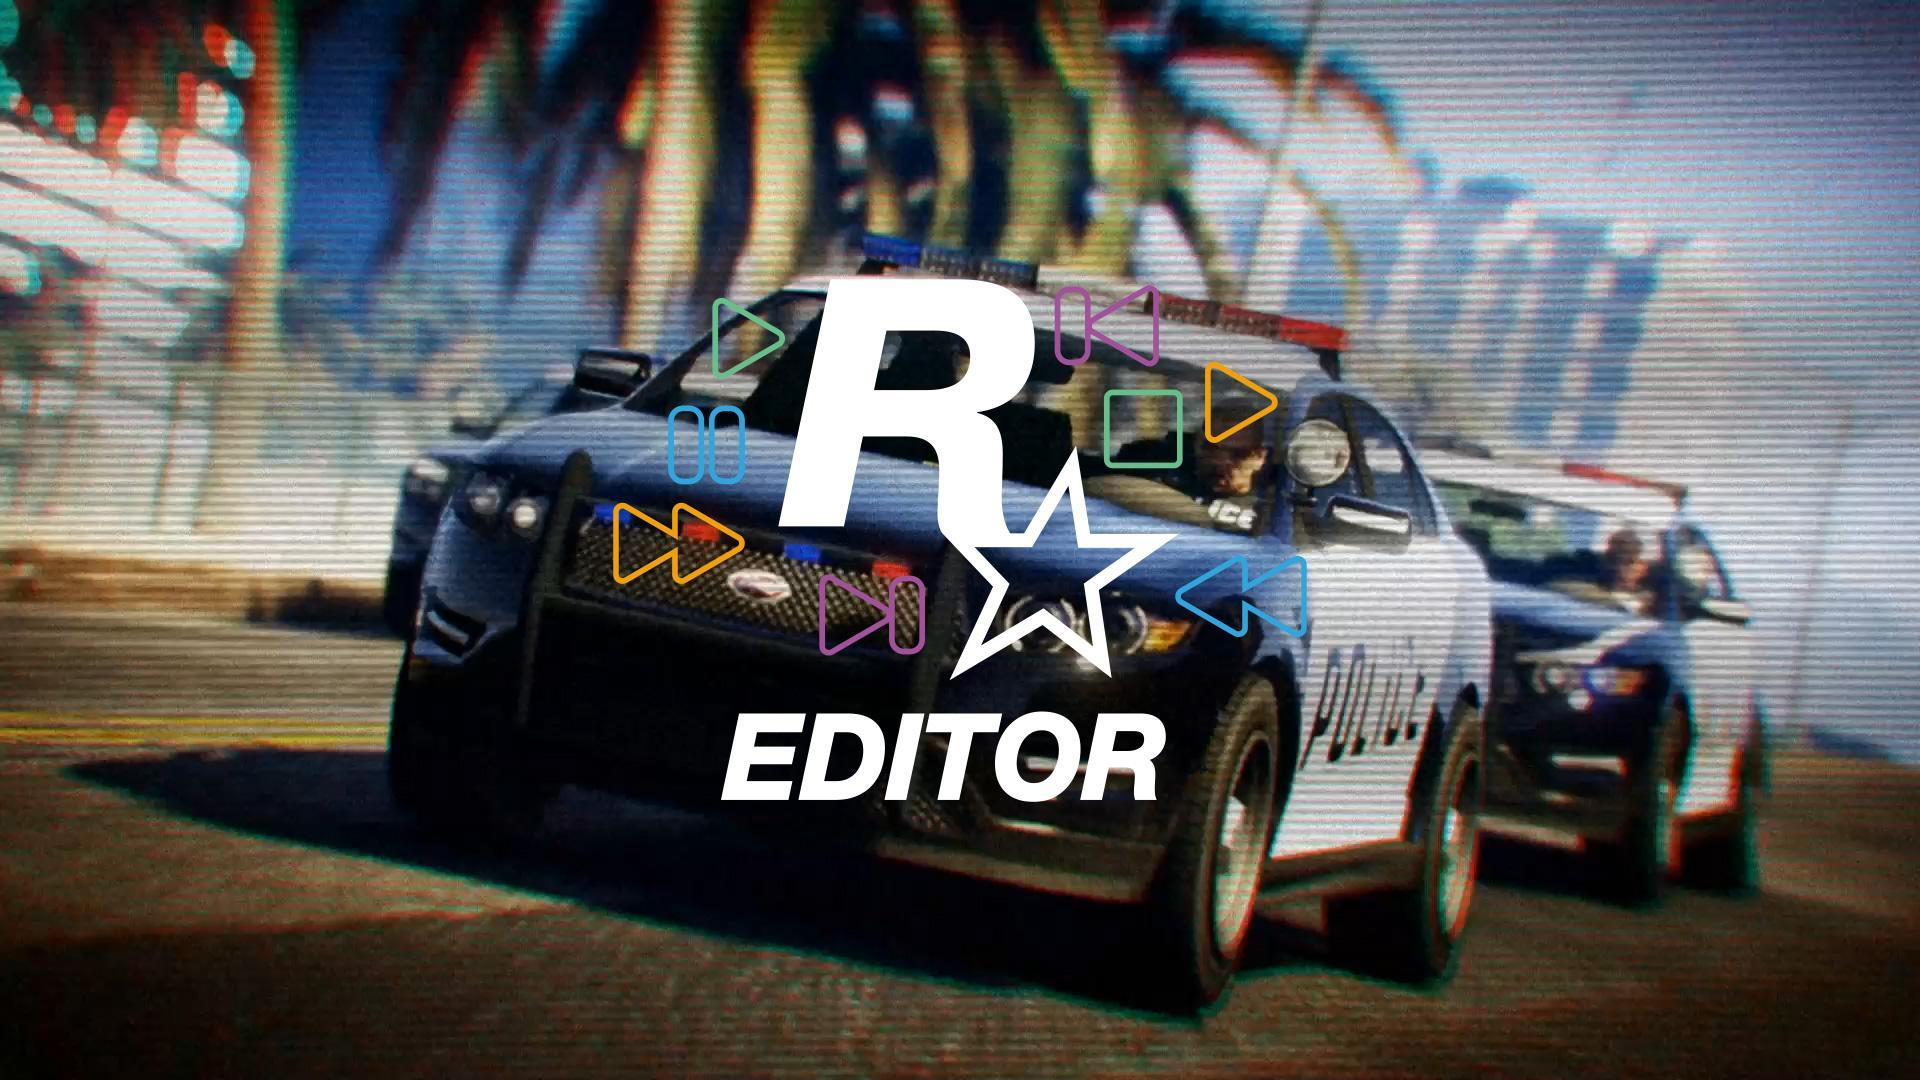 Introducing the GTA V Rockstar Editor and Director Mode